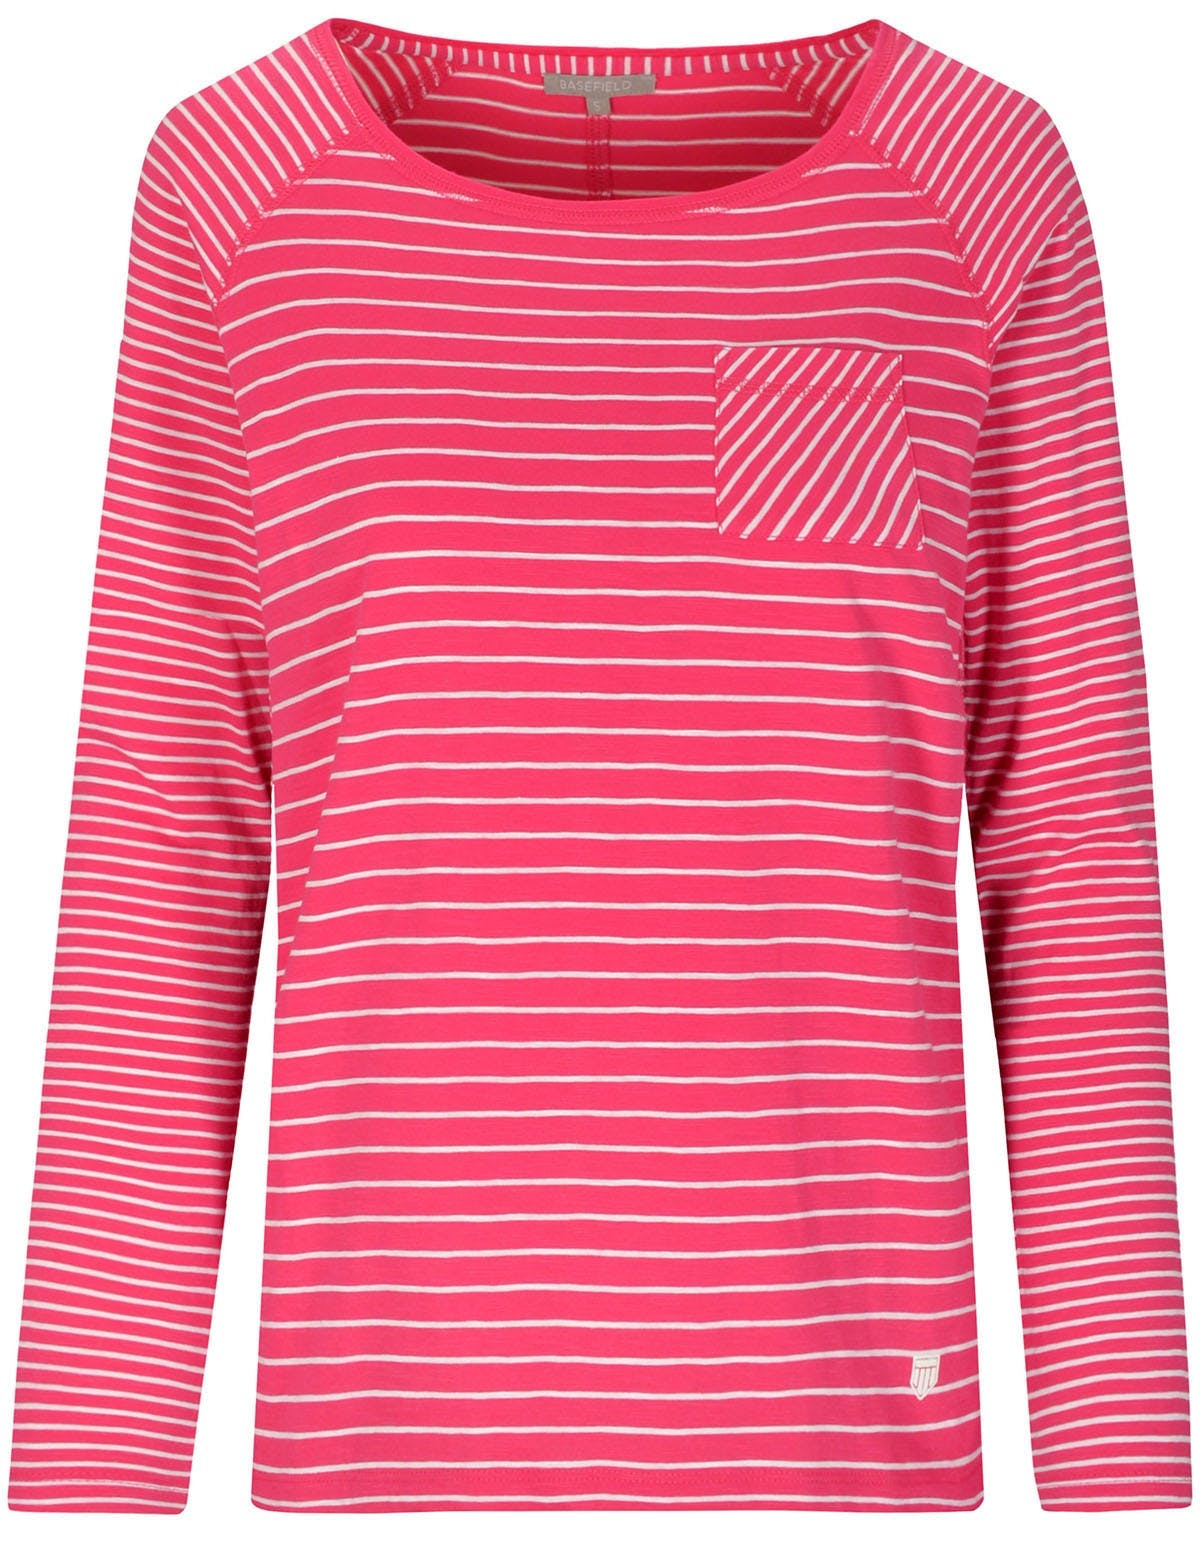 Streifenshirt ANDREA - Power Fuchsia